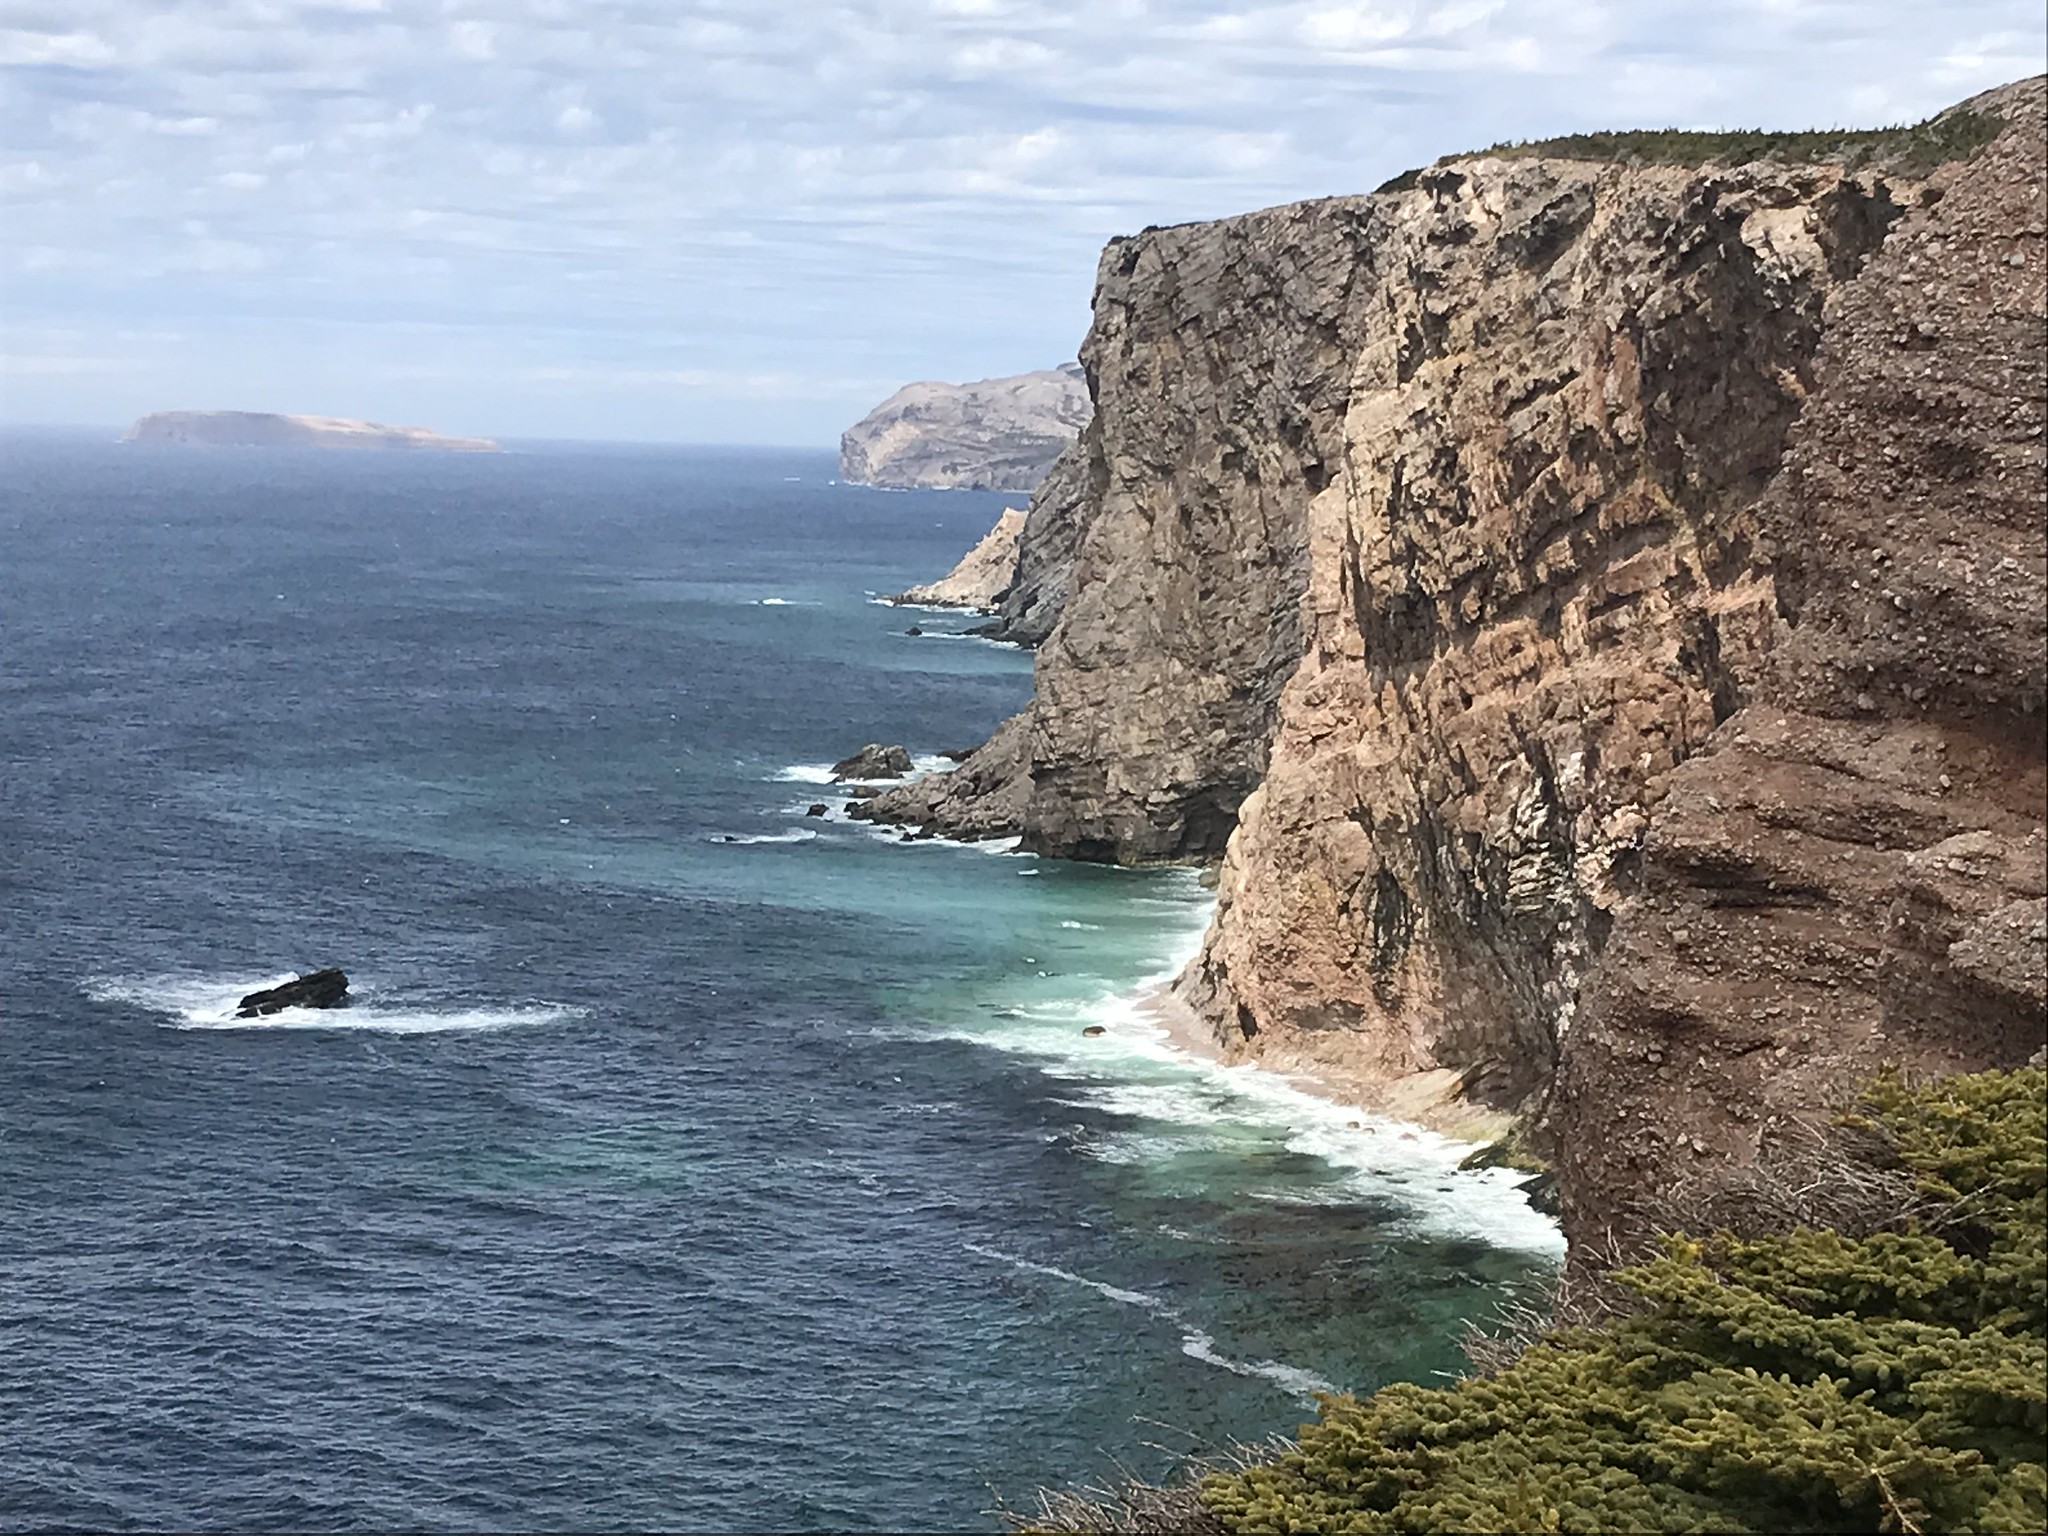 Seabirds nests on cliffs of Cape St. George, Newfoundland, May 2018 Photo Credit: USFWS